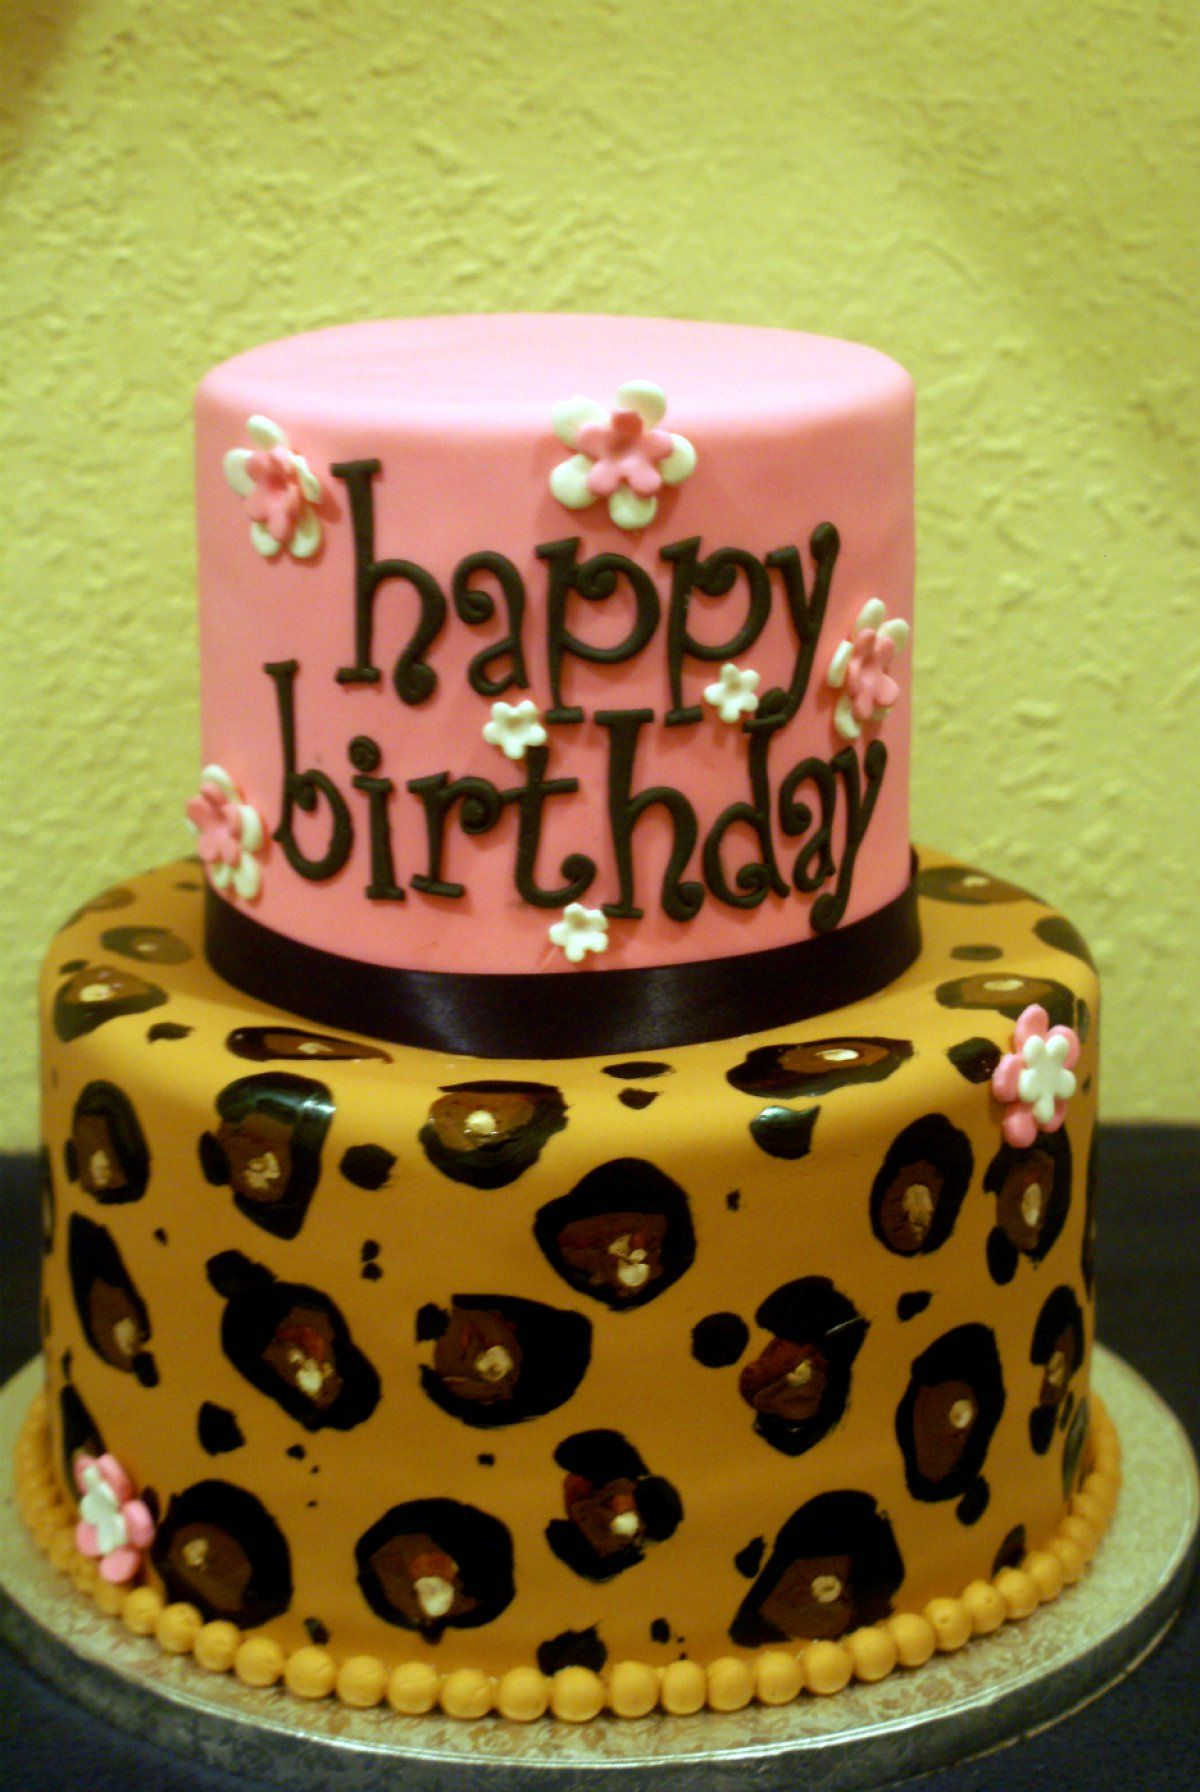 leopard print birthday cakes Google Search Decorating Cakes